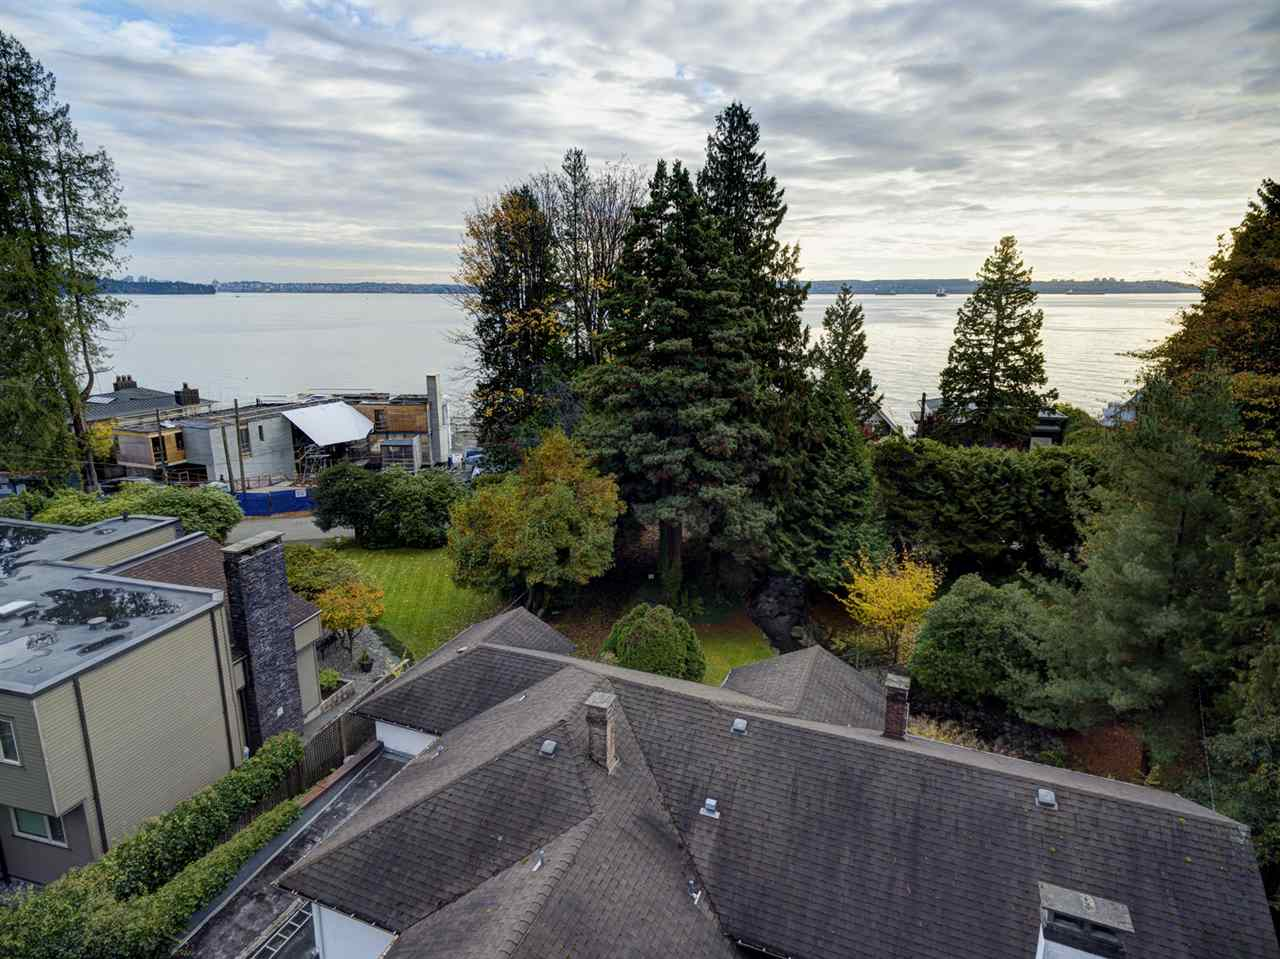 SPECTACULAR SEMI-WATERFRONT OPPORTUNITY! The Golden Mile of BELLEVUE AVENUE! Build your dream home now (approx 6000sqft) or hold for future possibilities. Situated at the end of a private & stately 17,000 sqft+ property. Environmental Report, Topographical map & new Survey available. Glorious natural landscape amidst old rose gardens and a storybook creek. Older existing home with large principal rooms including the 30ft living room with gas fireplace & sunroom & 20ft dining room with gas fireplace. Large galley kitchen & family with gas fireplace opens out to private gardens. Master bedroom plus second bedroom and den/bedroom complete the main floor. Lower level consists of a recreation room with fireplace, games room, 2 bedrooms, greenhouse & 20ft workshop. Walking distance to Dundarave By The Sea, Preschool, Dundarave Village, Dundarave Beach & Seawall. Close to West Bay & Irwin Park Schools, West Van Rec Centre, Swimming Pool & Ice Rink.